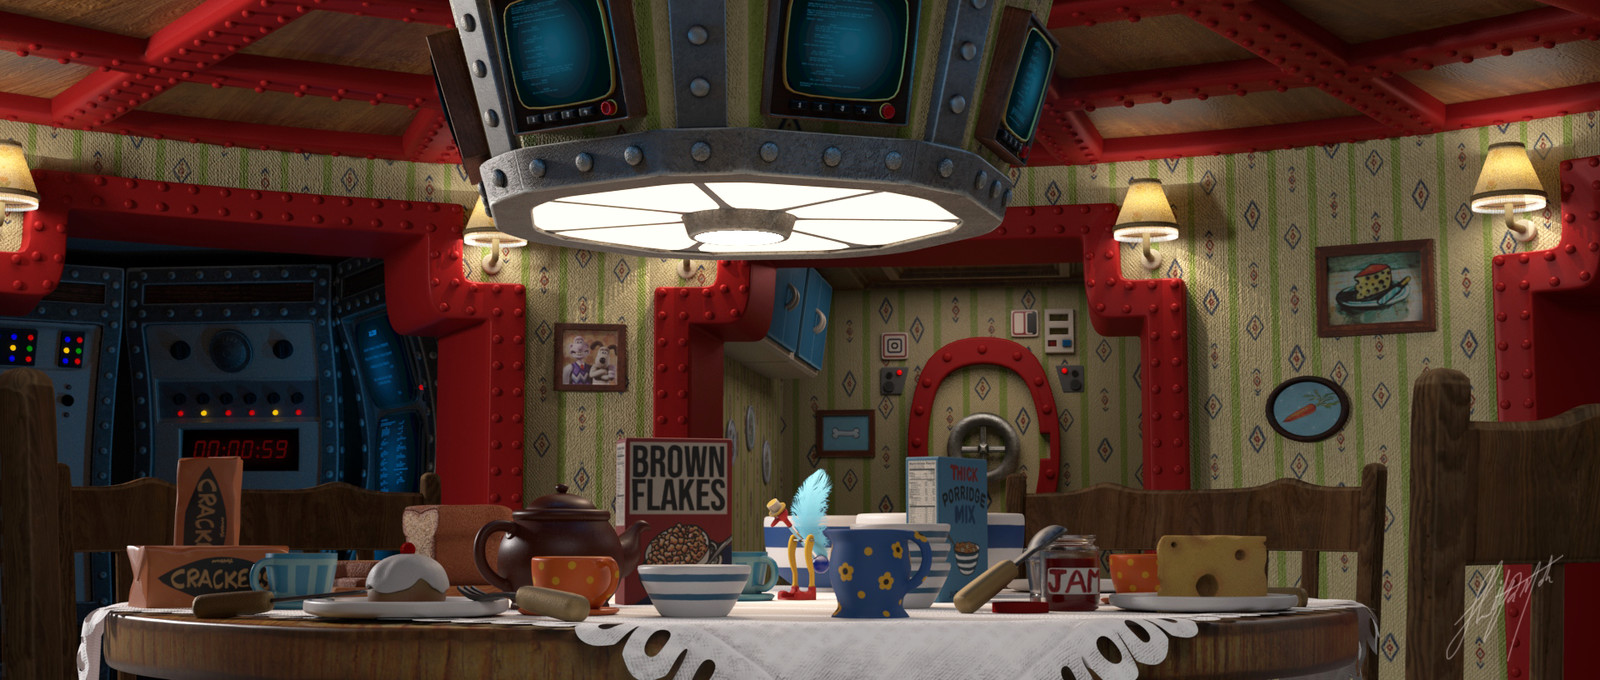 Alien Scene (1979) in Wallace and Gromit Style.